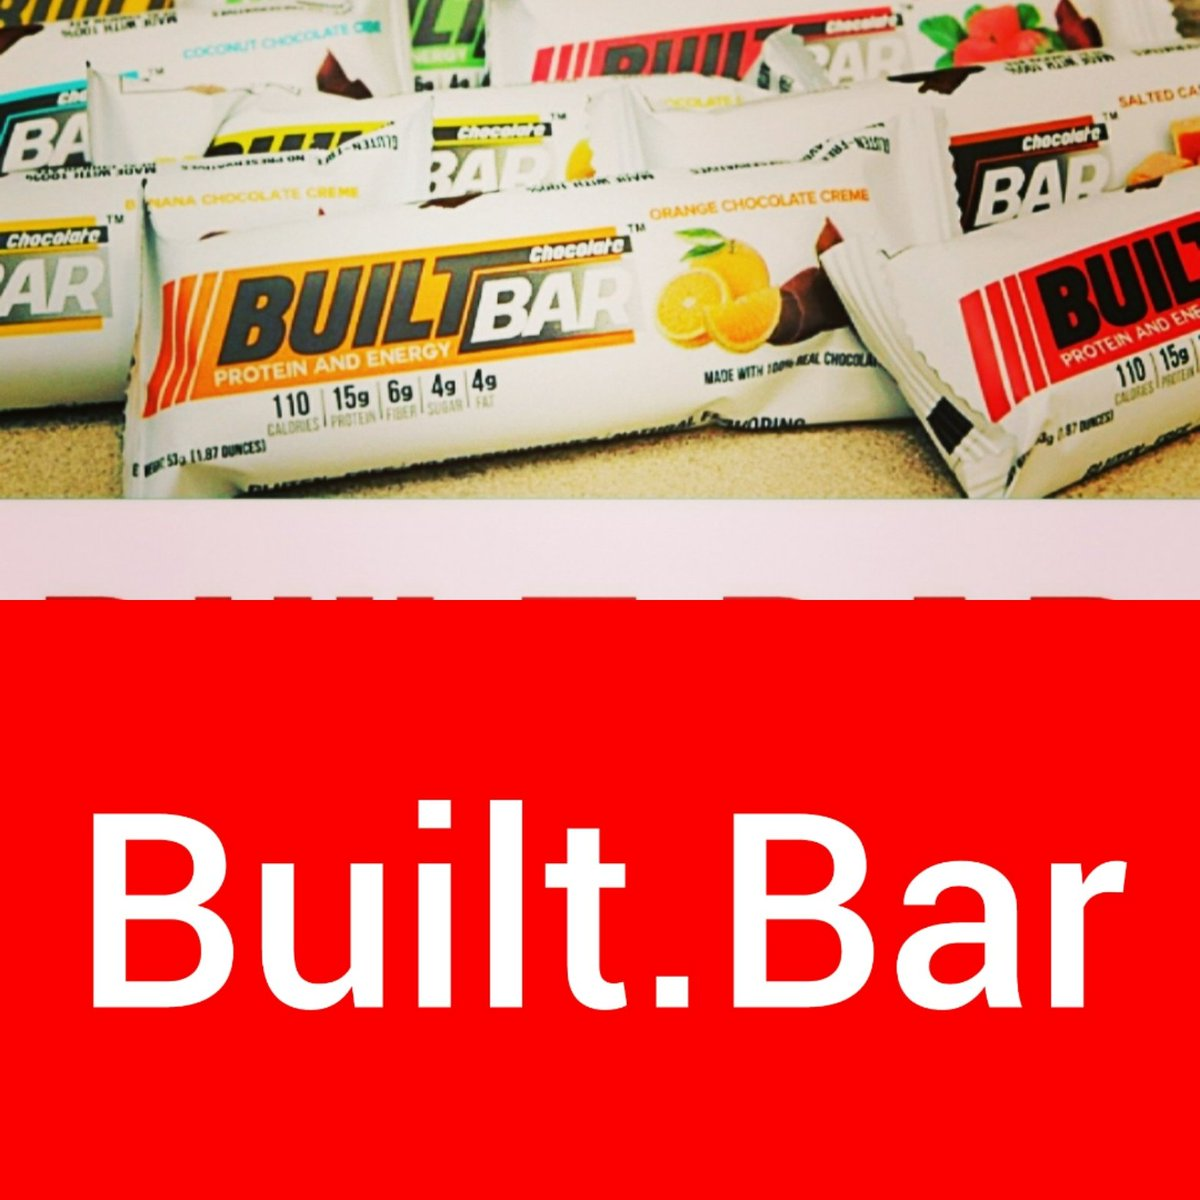 👉👉    #1 protein bar in the world  #builtbar #proteinbar #bars #protein #healthy #fit #fitness #weightloss #diet #keto #ketodiet #workout #ketogenic #glutenfree #Workout #proteinbars #body #Gym #healthylife #Bike  #Cycling #Utah  #Fatloss #sports #life